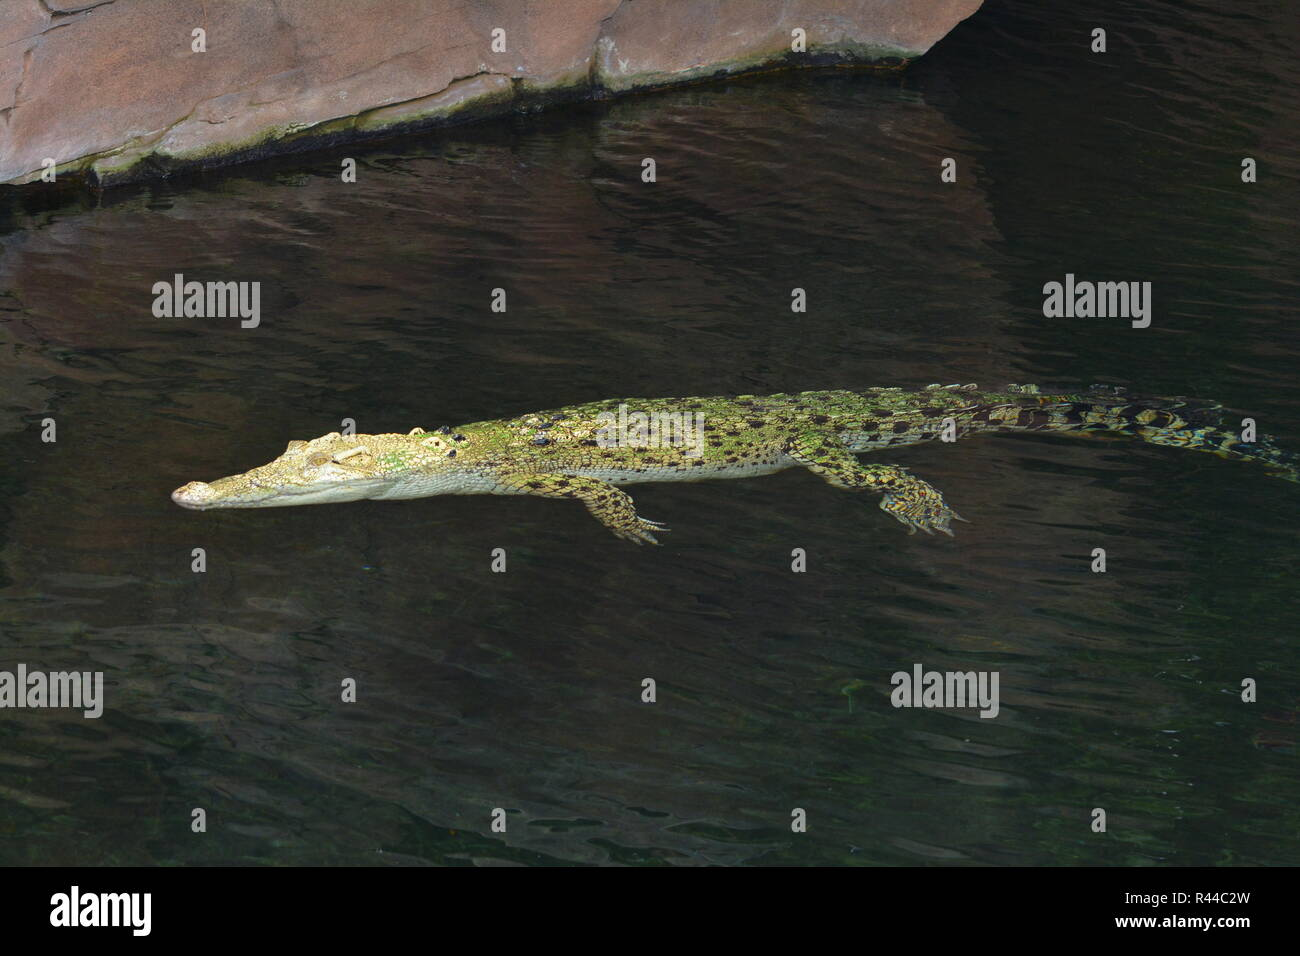 white crocodile - Stock Image